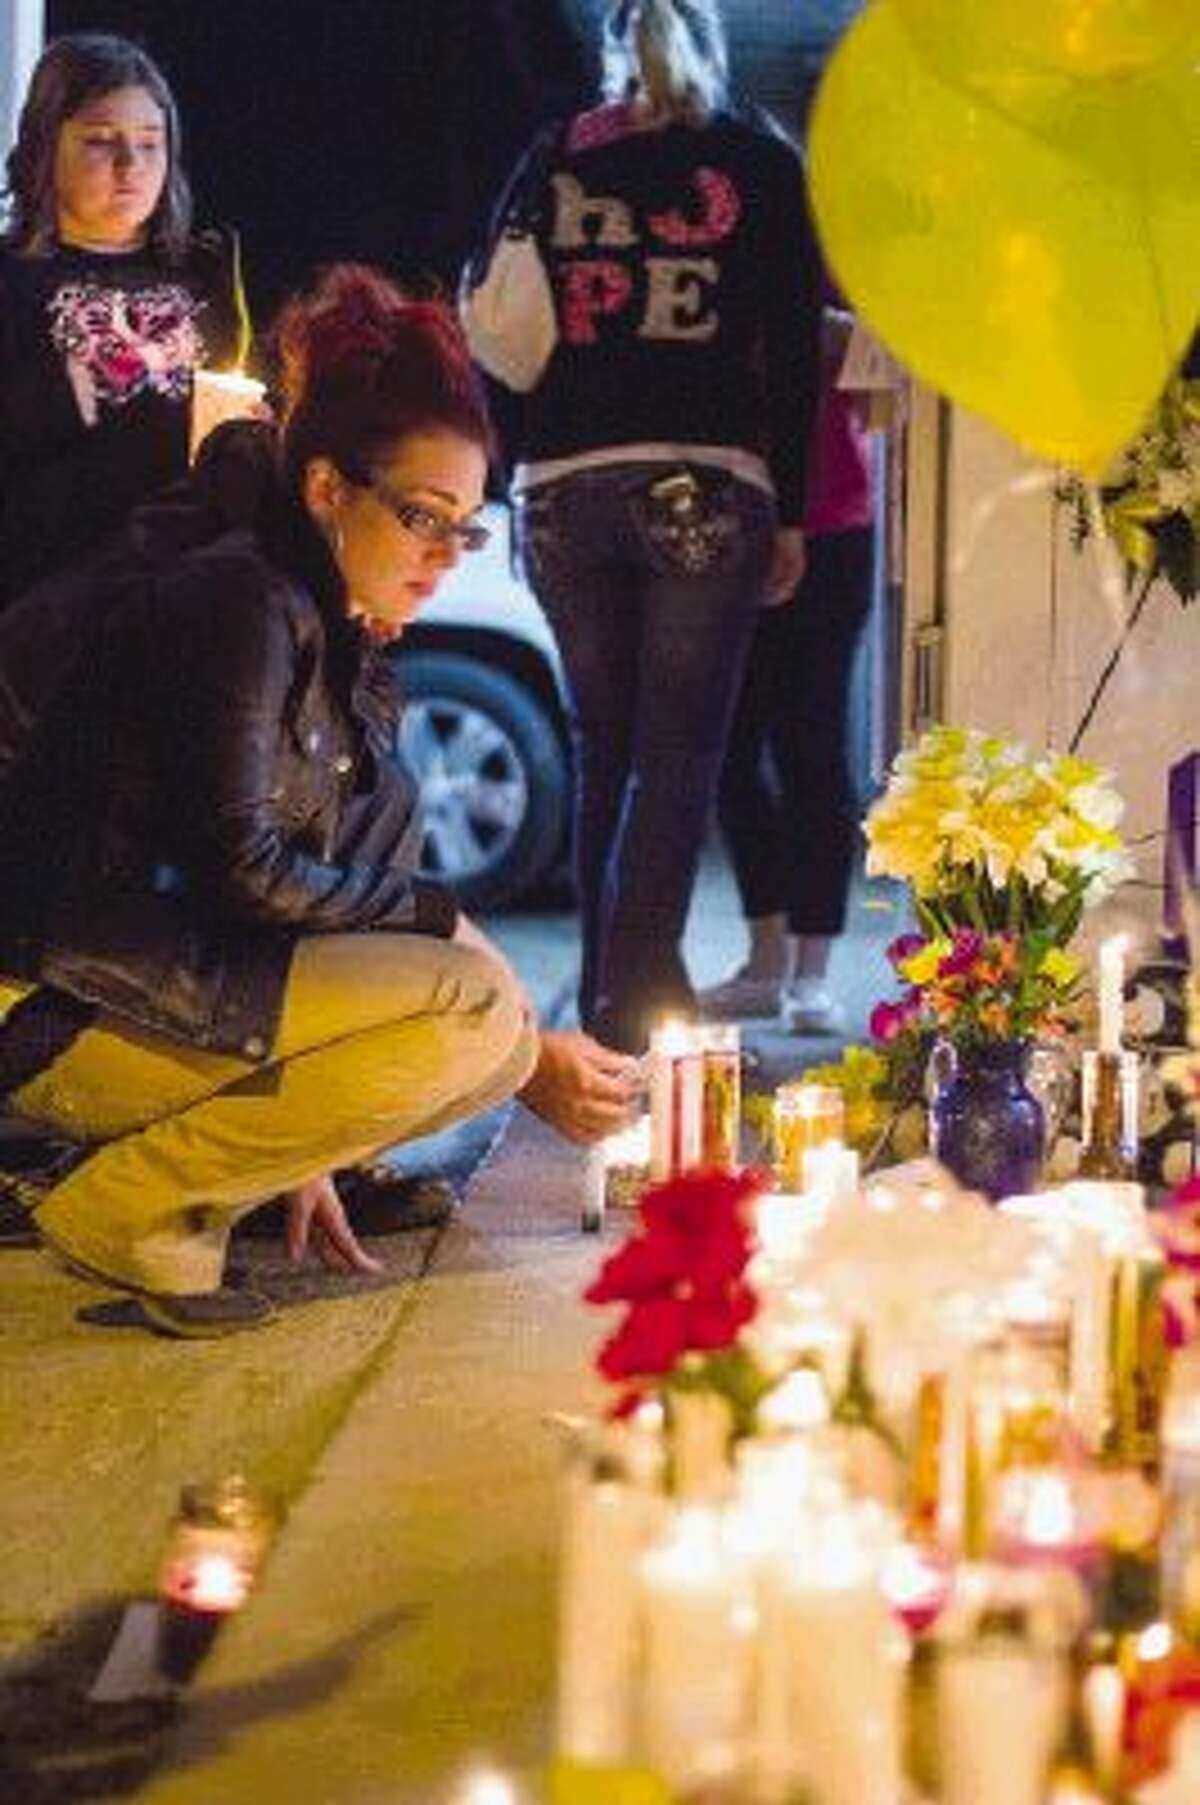 """Christina Smith lights a candle during an impromptu vigil for Shamsuddin """"Sam"""" Sadruddin, a store owner who was killed during a robbery attempt Monday night at the Shell service station and convenience store in the 18300 block of Texas 105 East."""